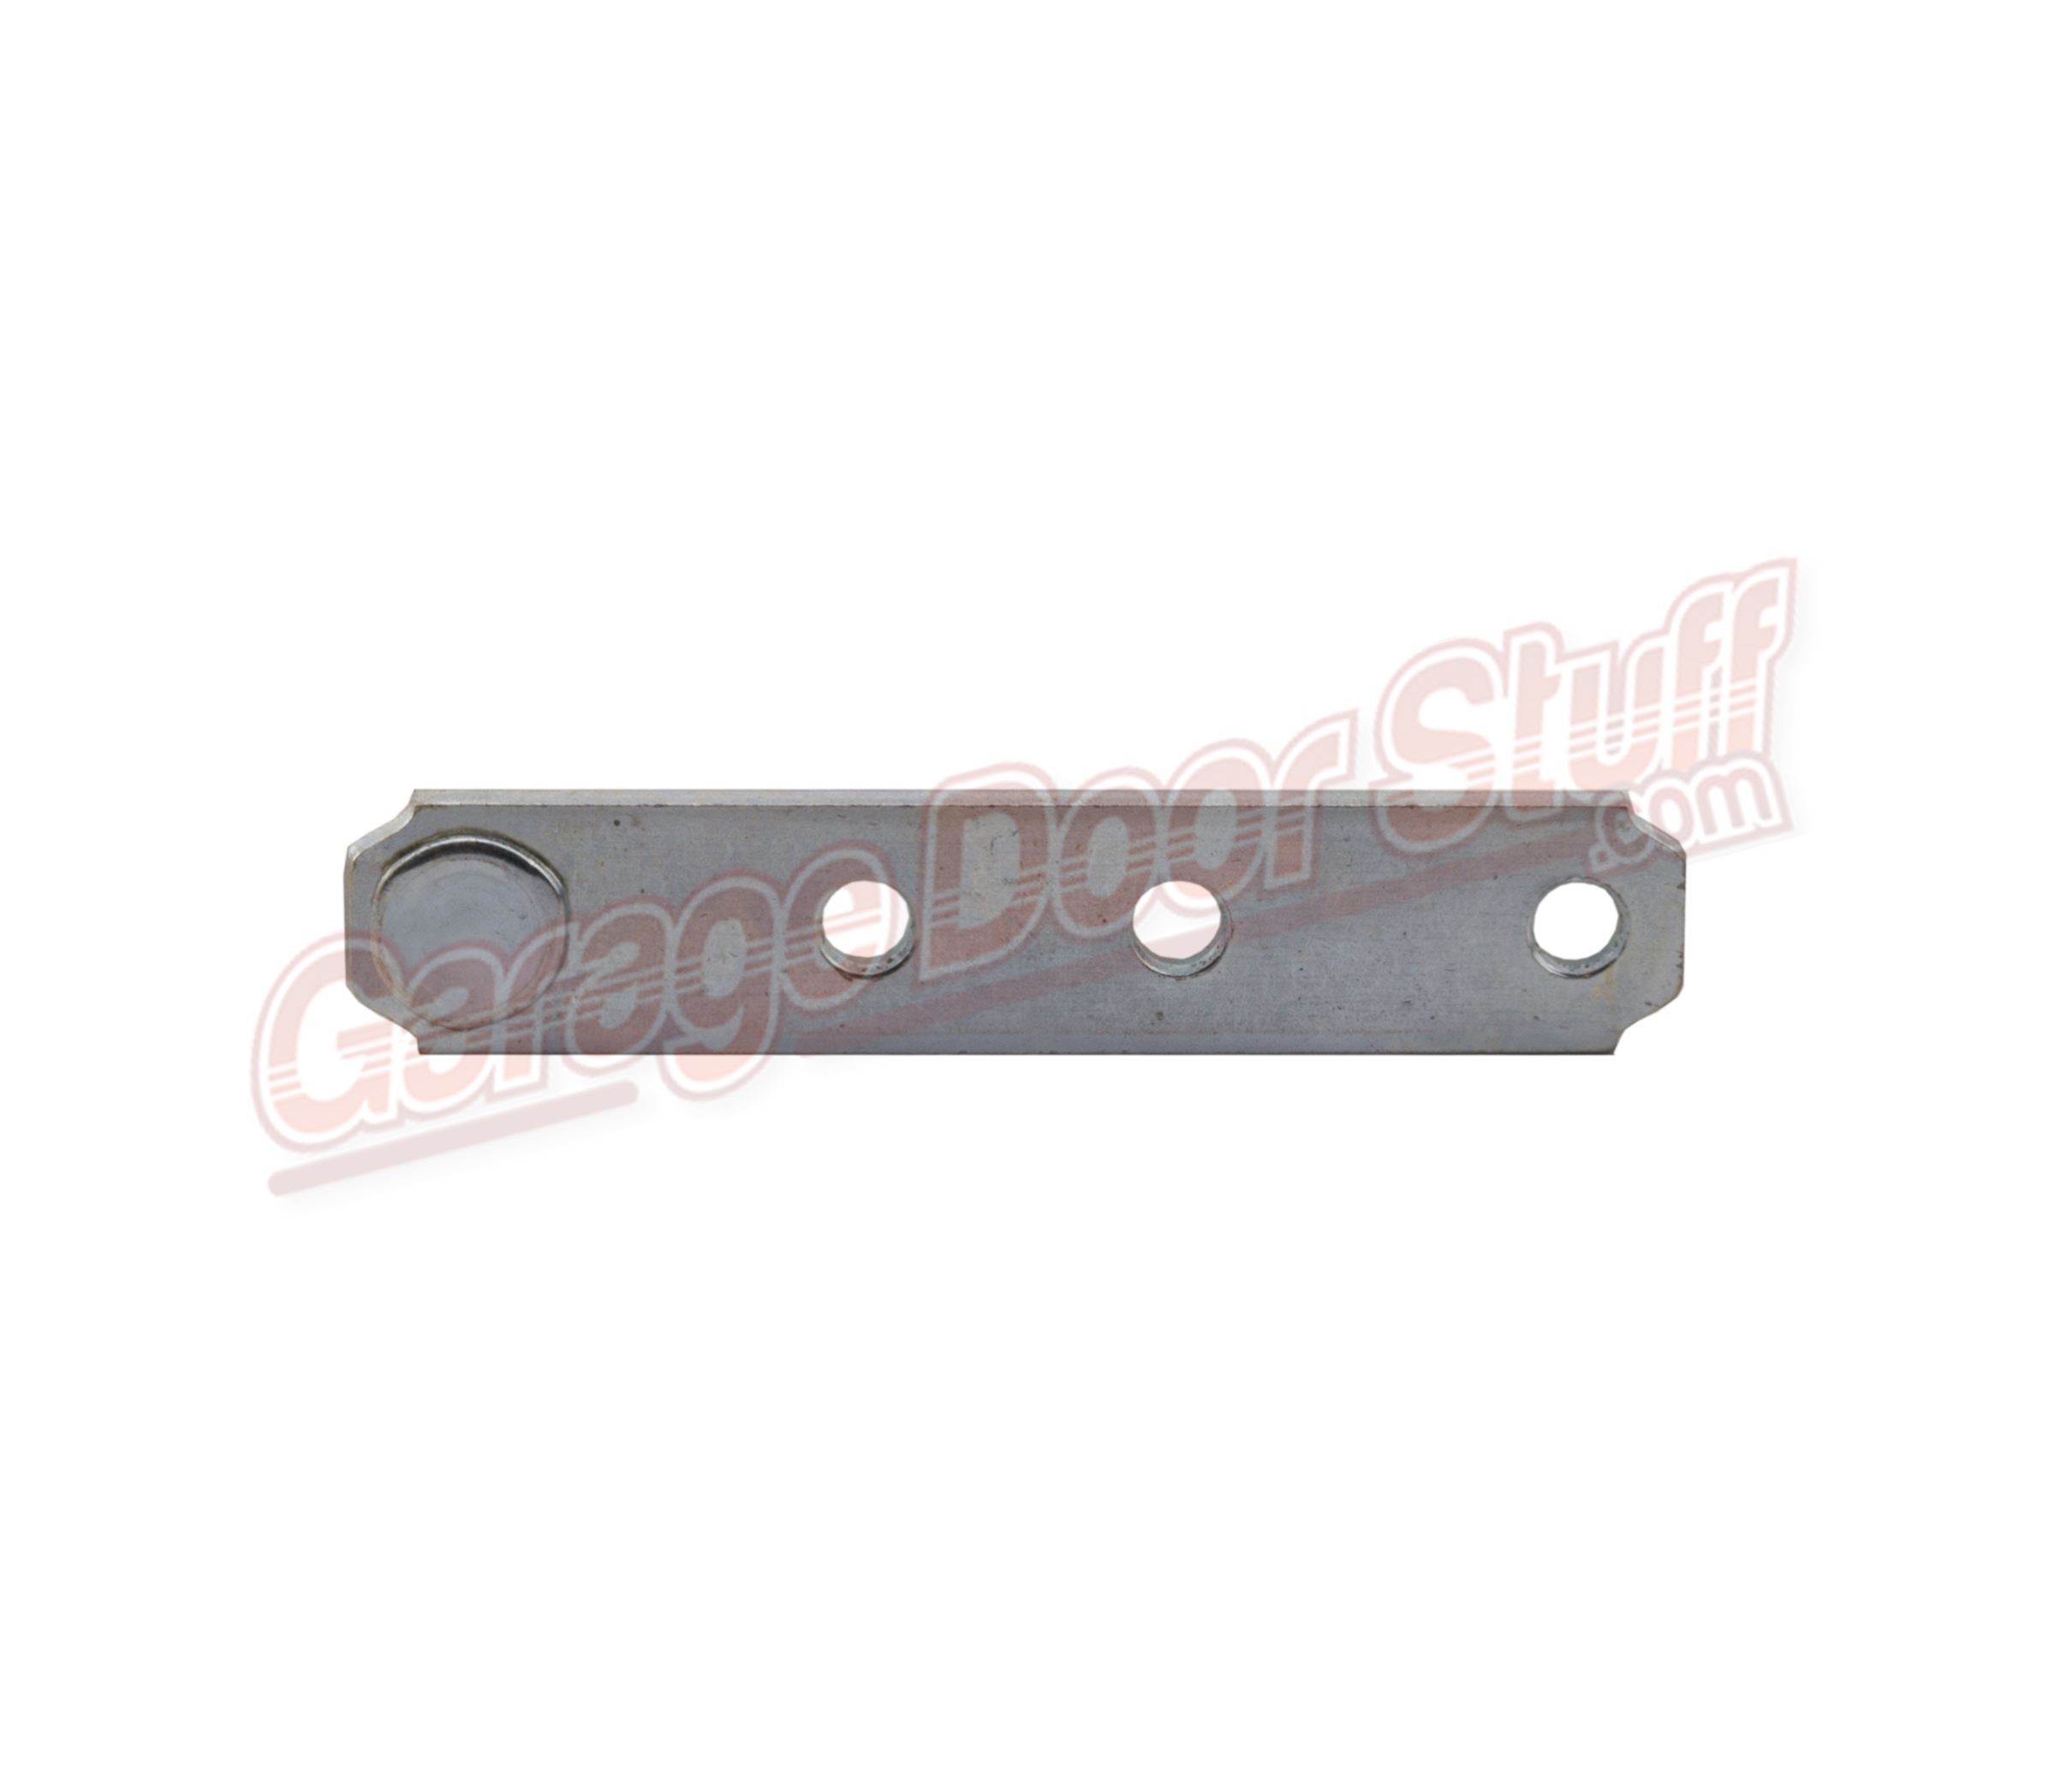 Genie Garage Door Rail Strap 22766r04 S Garage Door Stuff